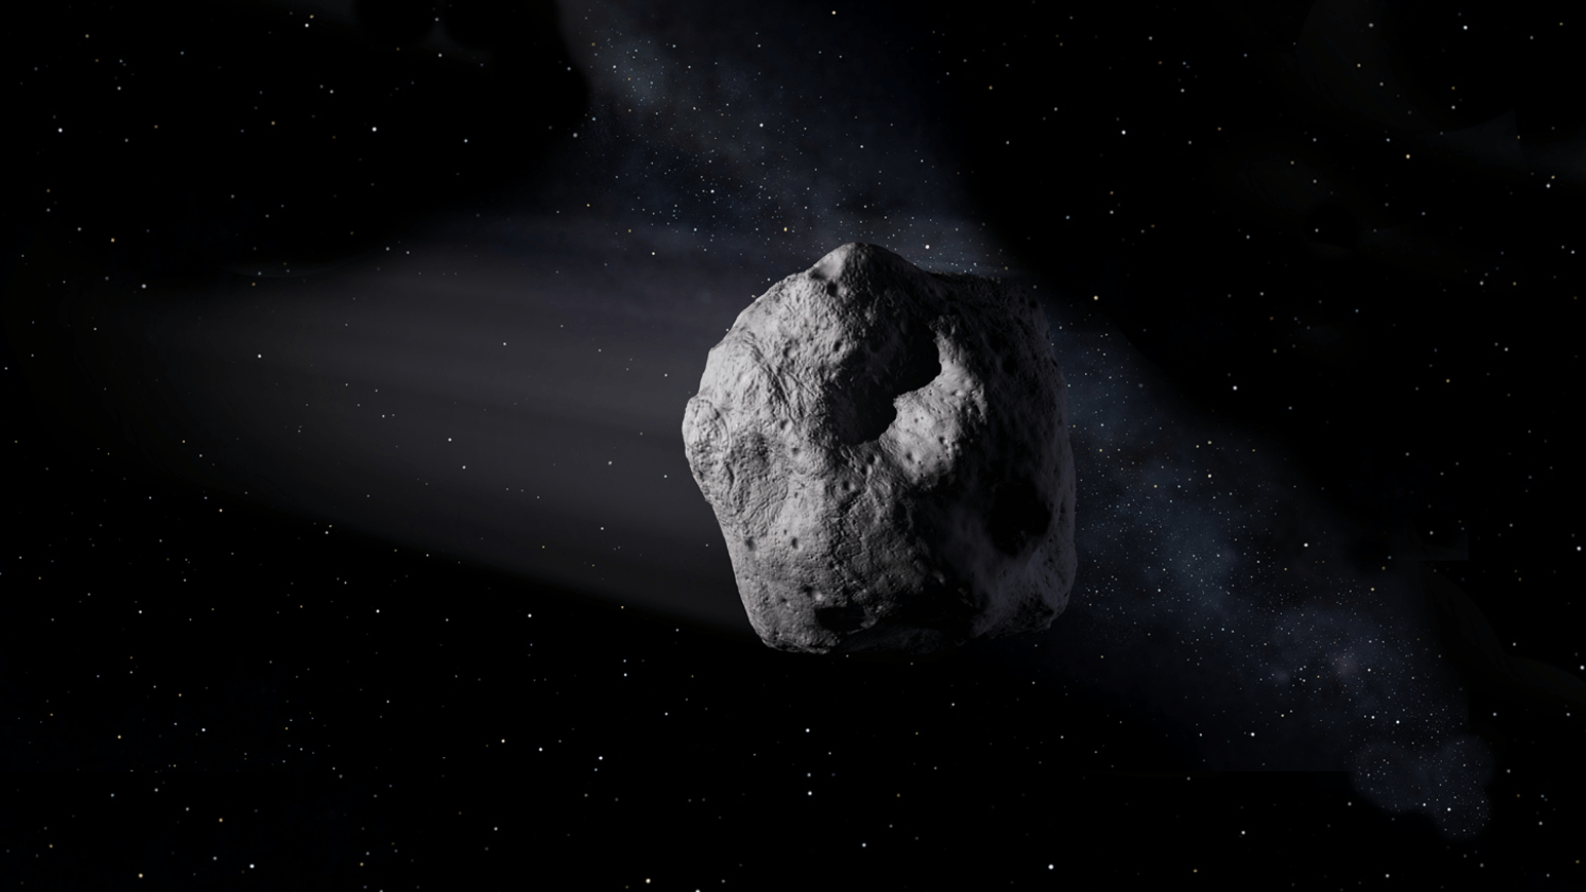 A stadium-sized asteroid will pass 'close' to Earth tomorrow